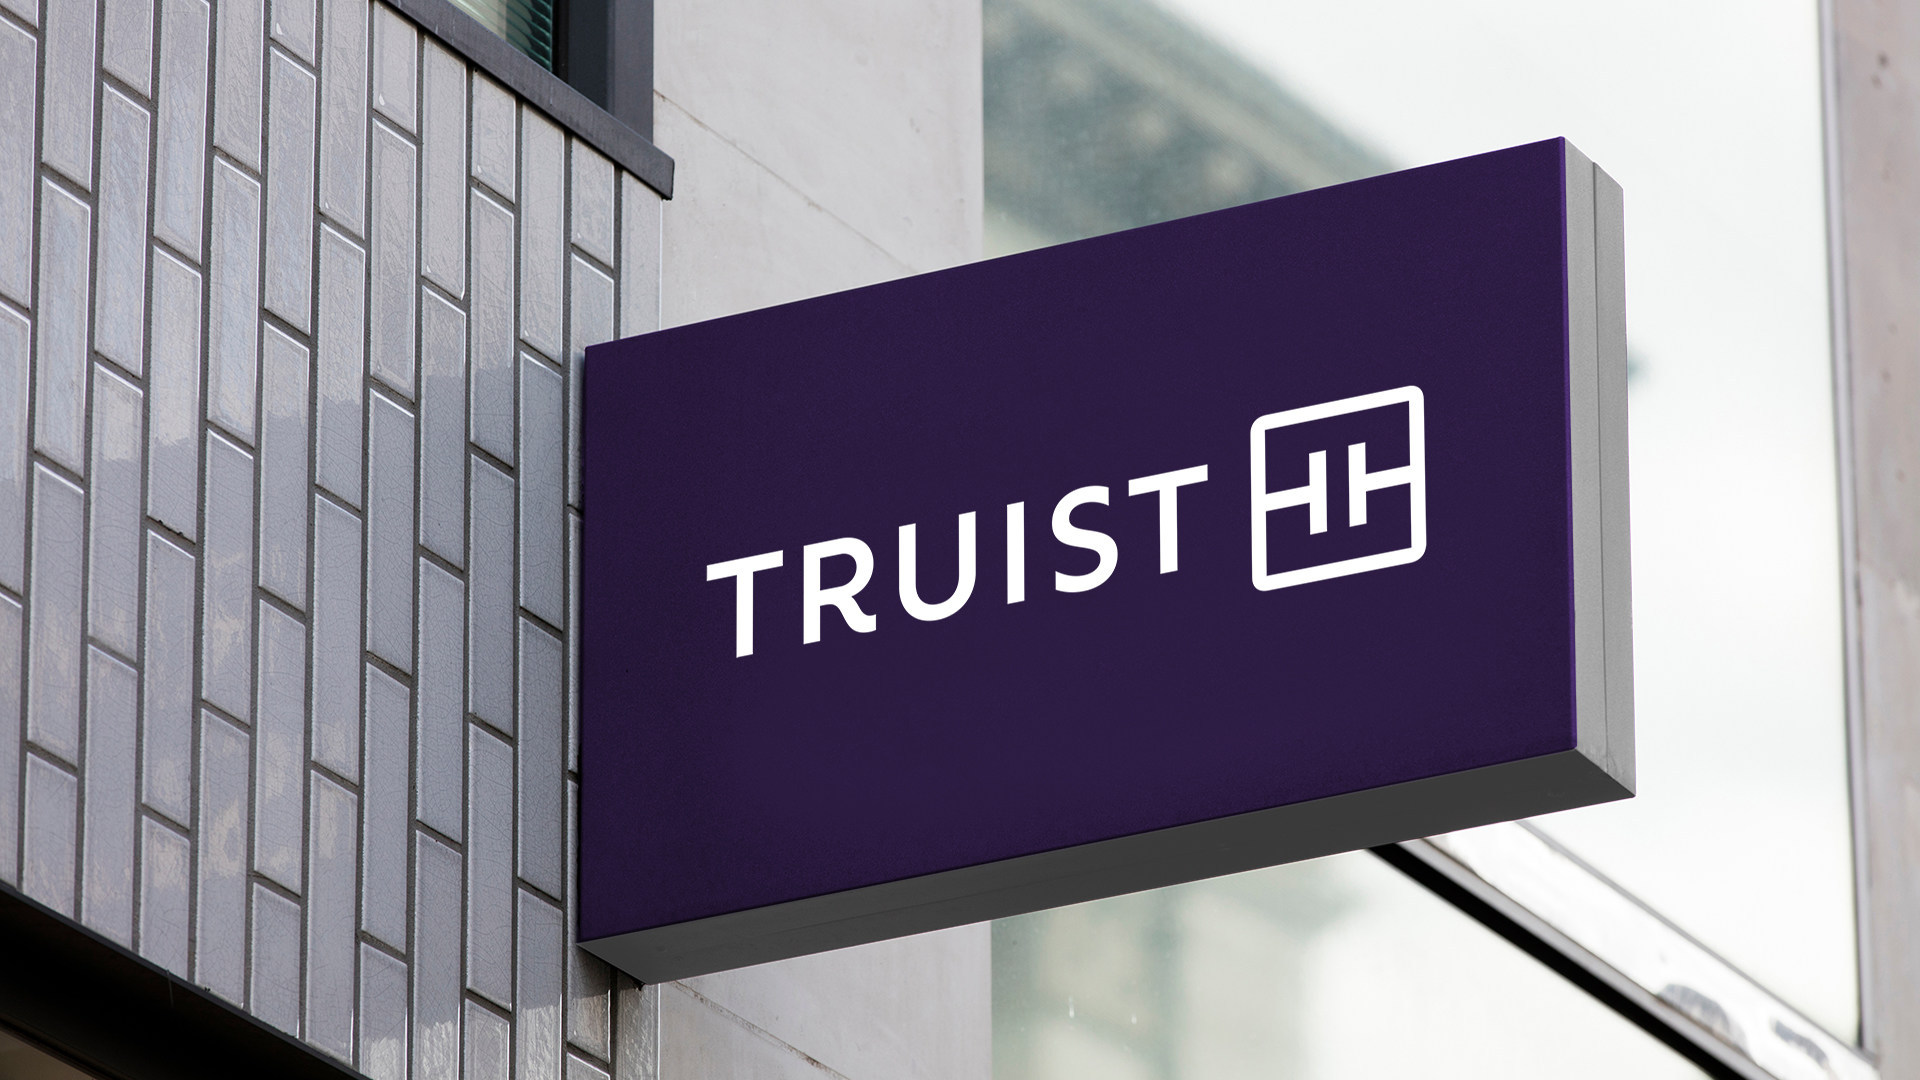 Executives on the Move: Truist builds blended team post-merger, Google gets ready for change